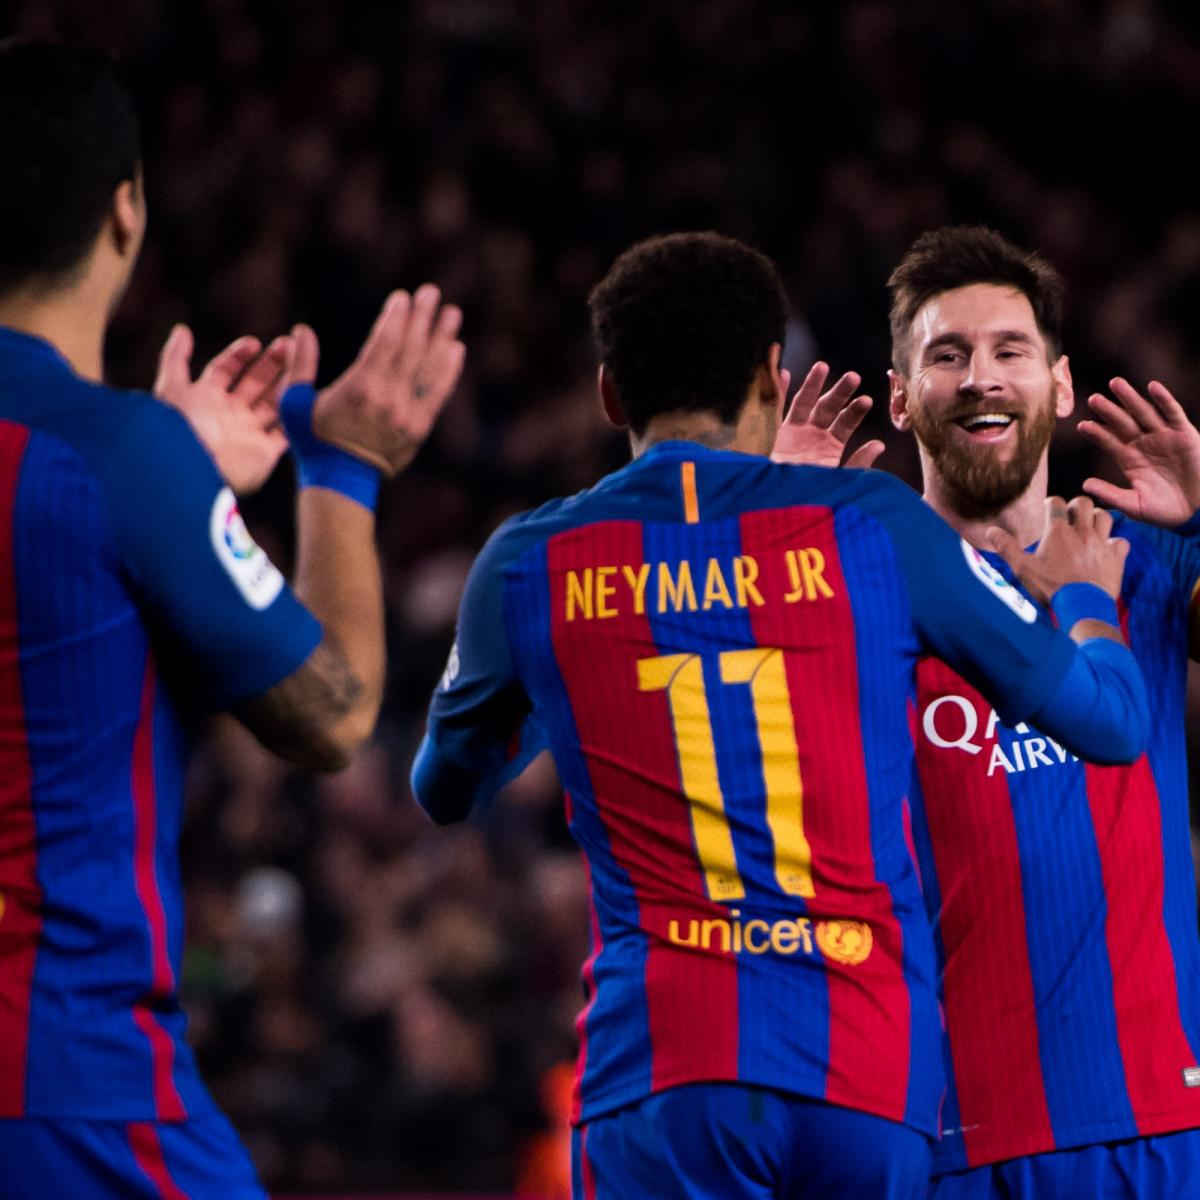 La liga results 2017 scores and updated table after - La liga latest results and table ...